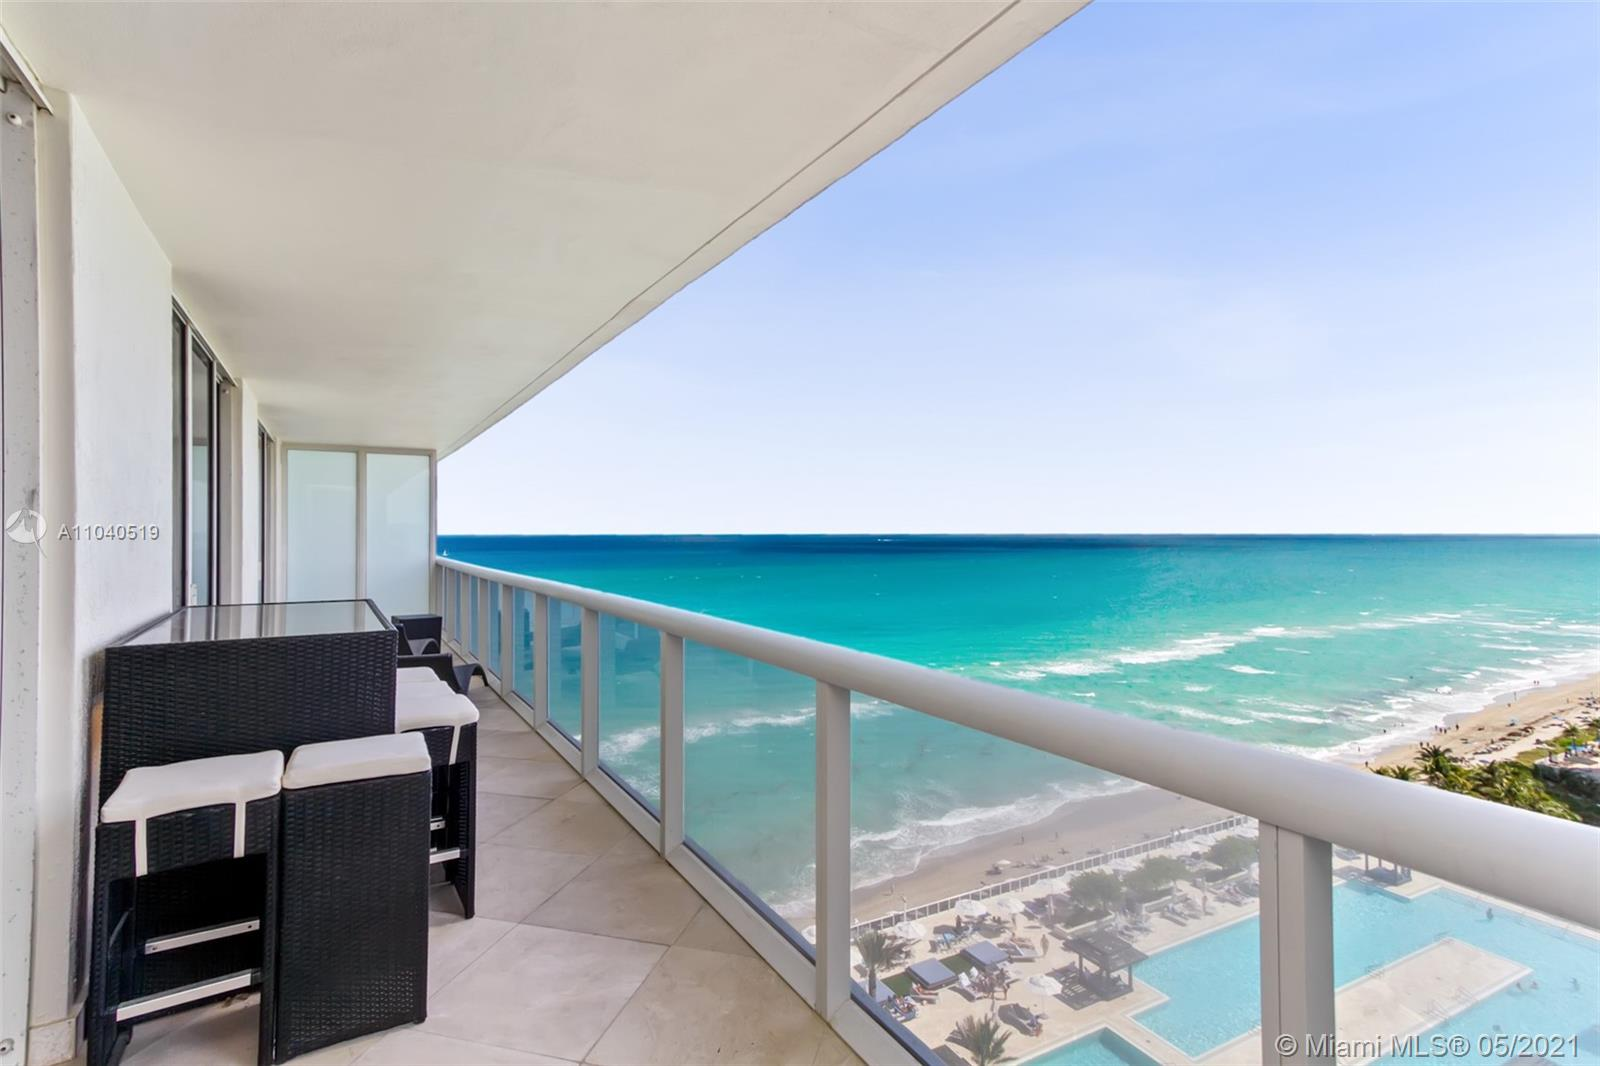 Stunning views of the ocean and intracoastal, South-east exposure. 2 bedroom plus den and 3 baths. Furniture negotiable. All marble floors throughout. European styled cabinets, granite counter tops, floor to ceiling windows. Full time concierge, 24 hr. security and valet parking, 3 heated swimming pools and spa overlooking the Atlantic ocean, snack bar with pool side services , covered parking , room service and spa massage, 50,000 sq. /ft. spa and fitness center.